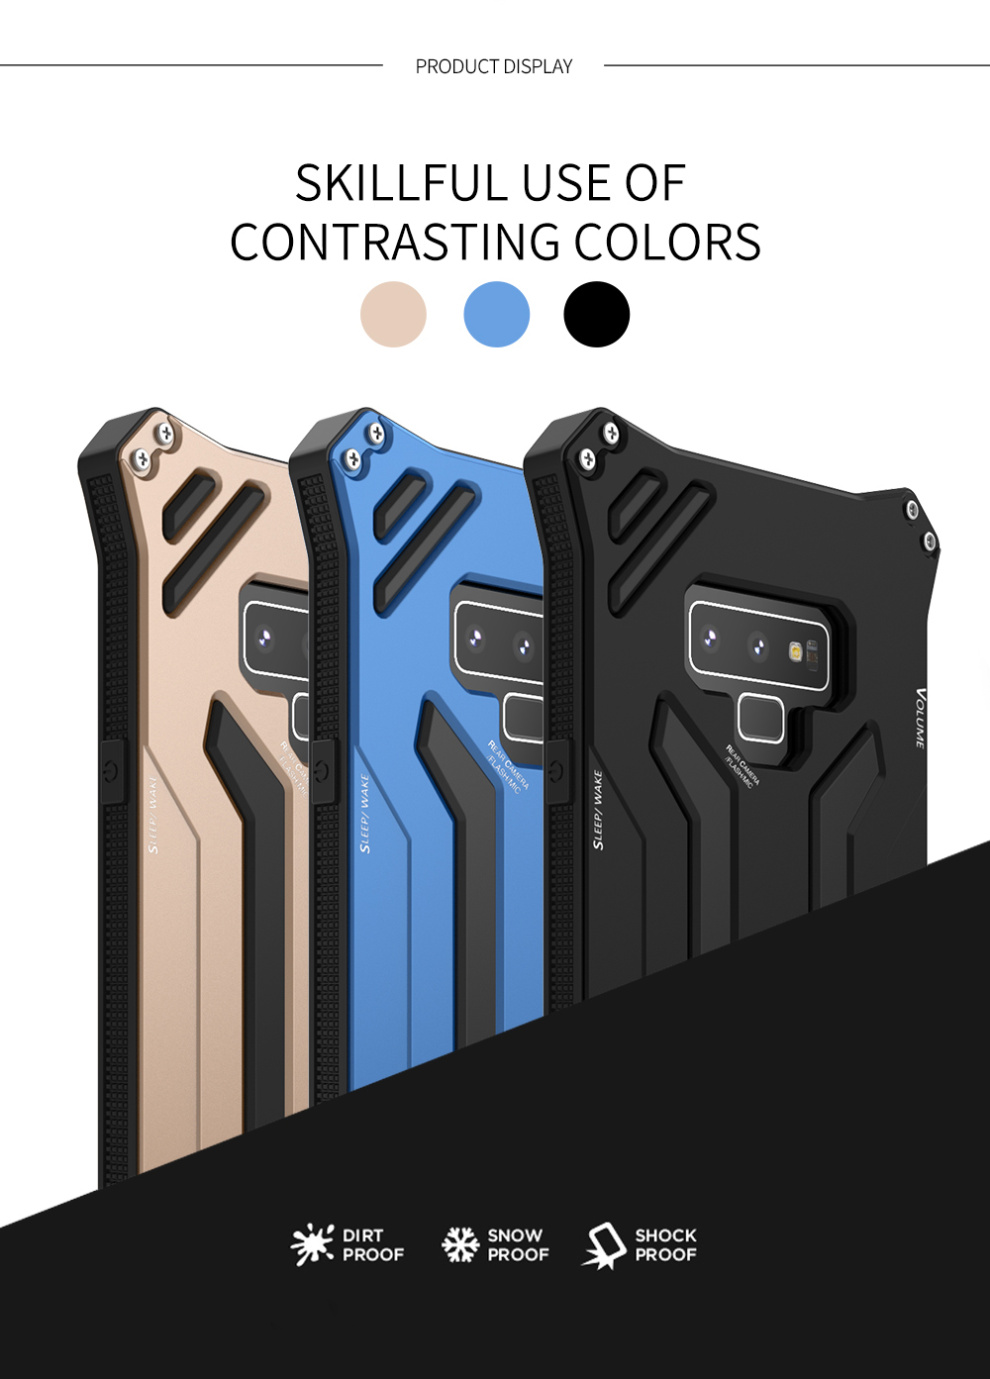 R-Just Gundam Water-resistant Shockproof Dirt-proof Snow-proof Premium Armor Heavy Duty Metal Protective Case Cover for Samsung Galaxy Note 9